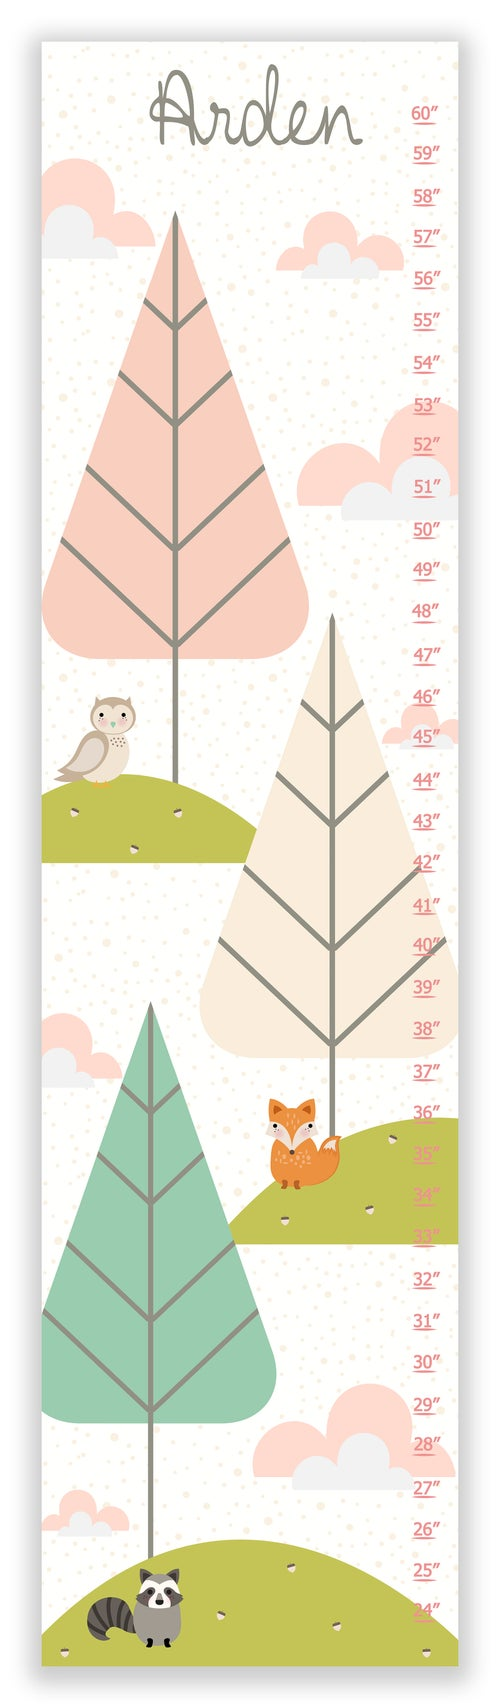 Image of Sweet Forest Friends Blush Pink Personalized Canvas Growth Chart